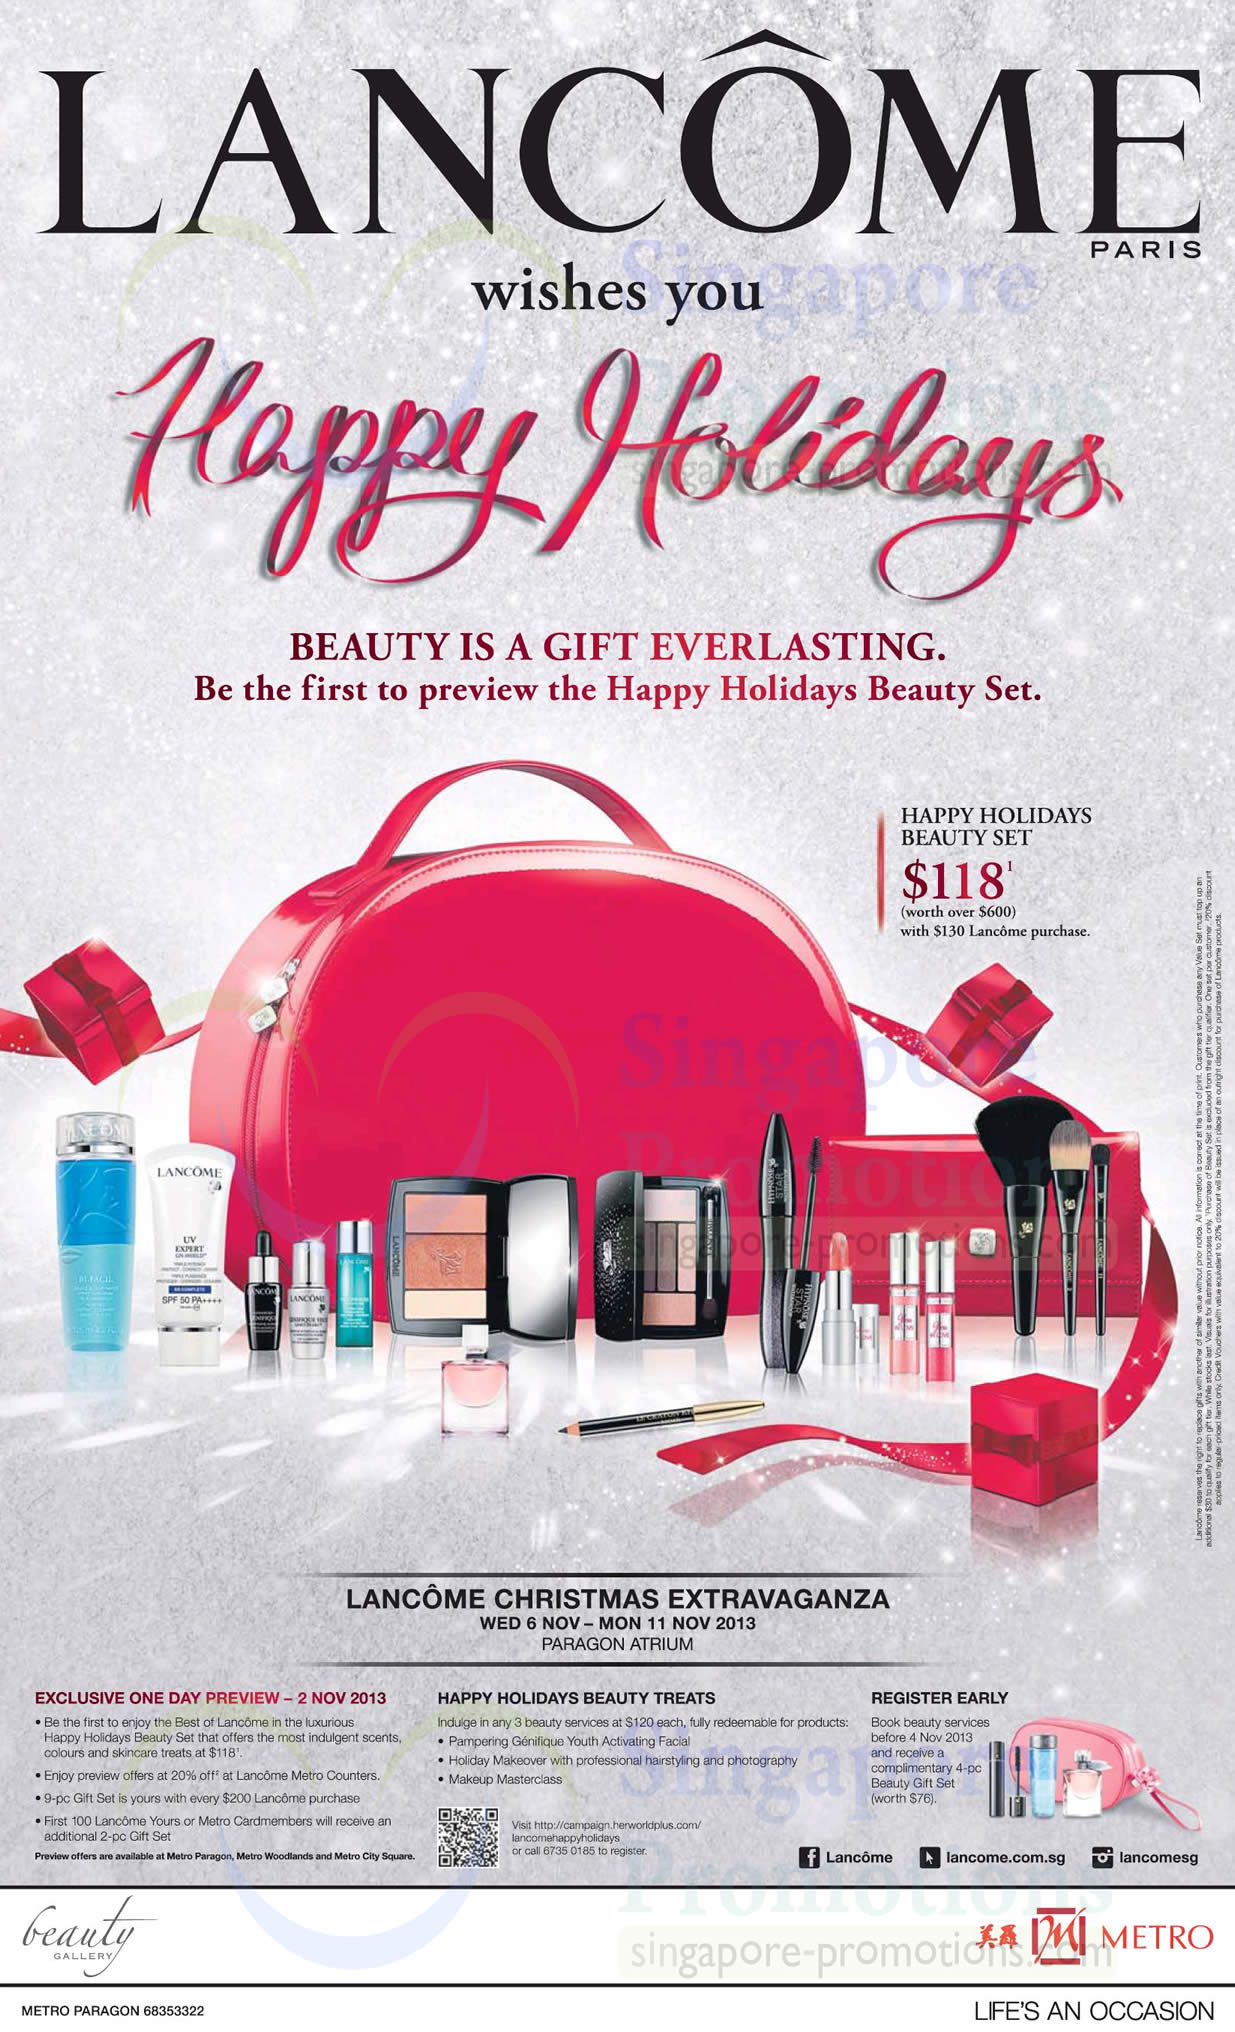 31 Oct 20 Percent Off Preview On 2 Nov at Lancome Metro Counters